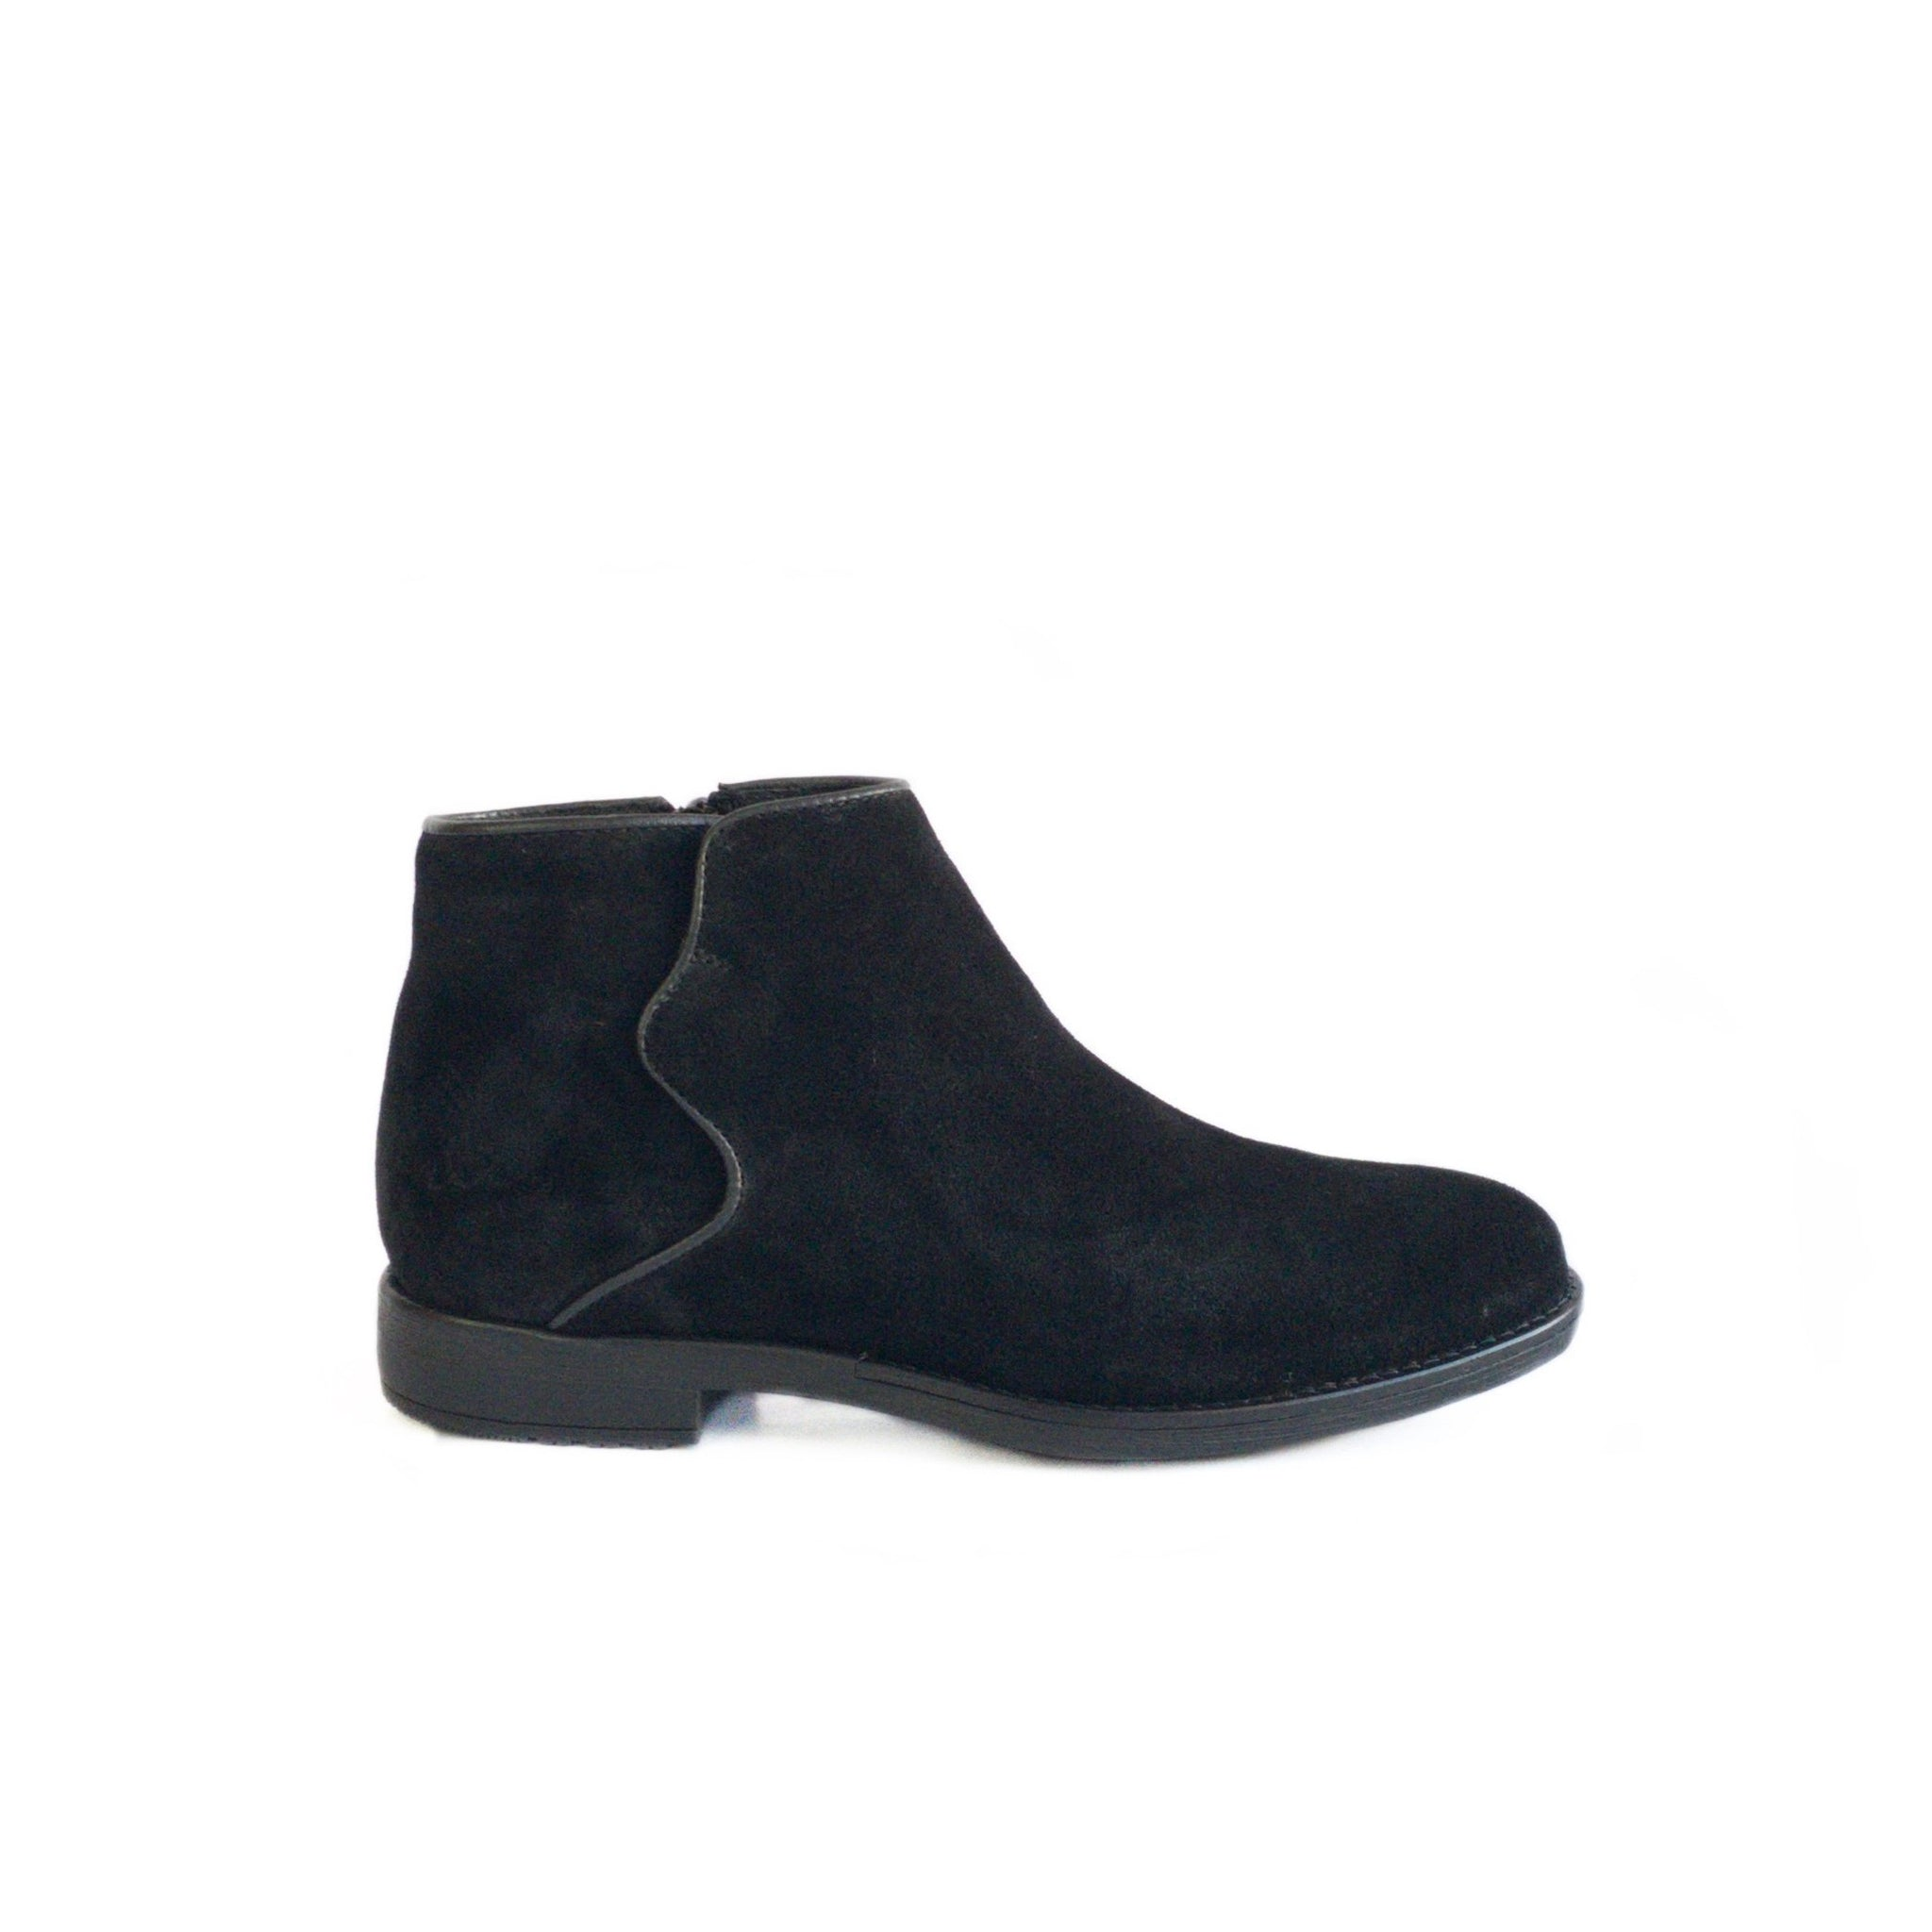 BOS & CO - RURAL IN BLACK SUEDE